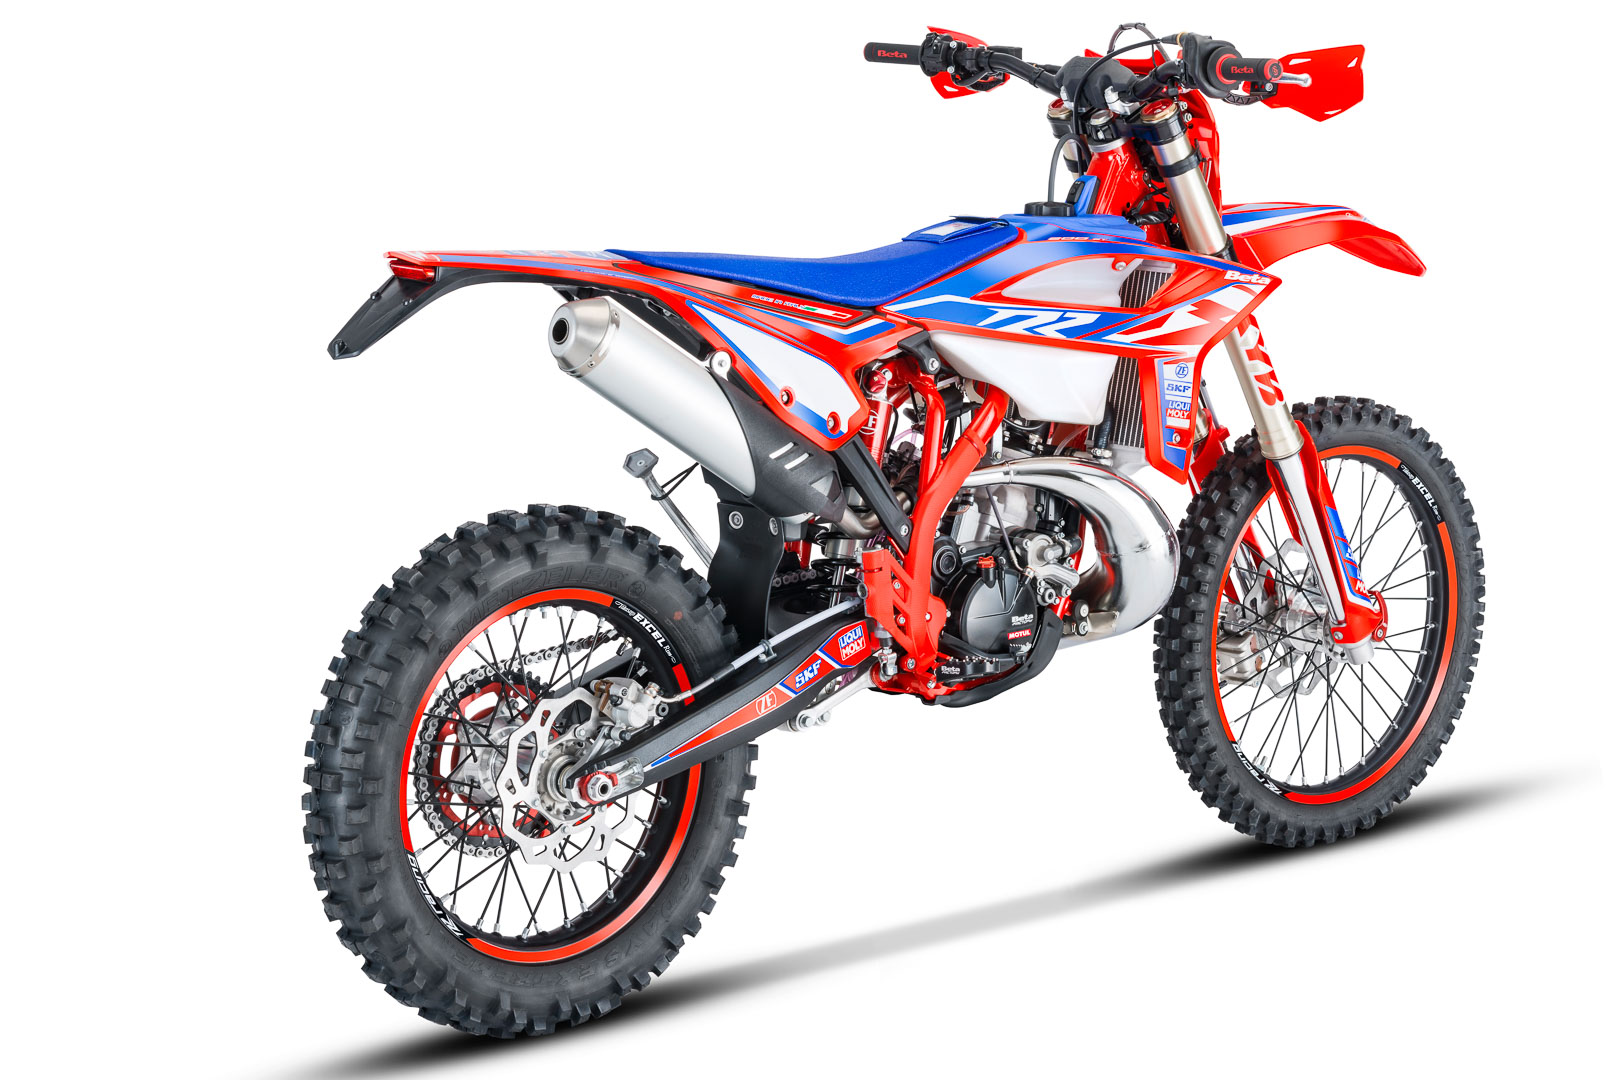 2022 Beta RR Race Edition 2-Strokes For Sale